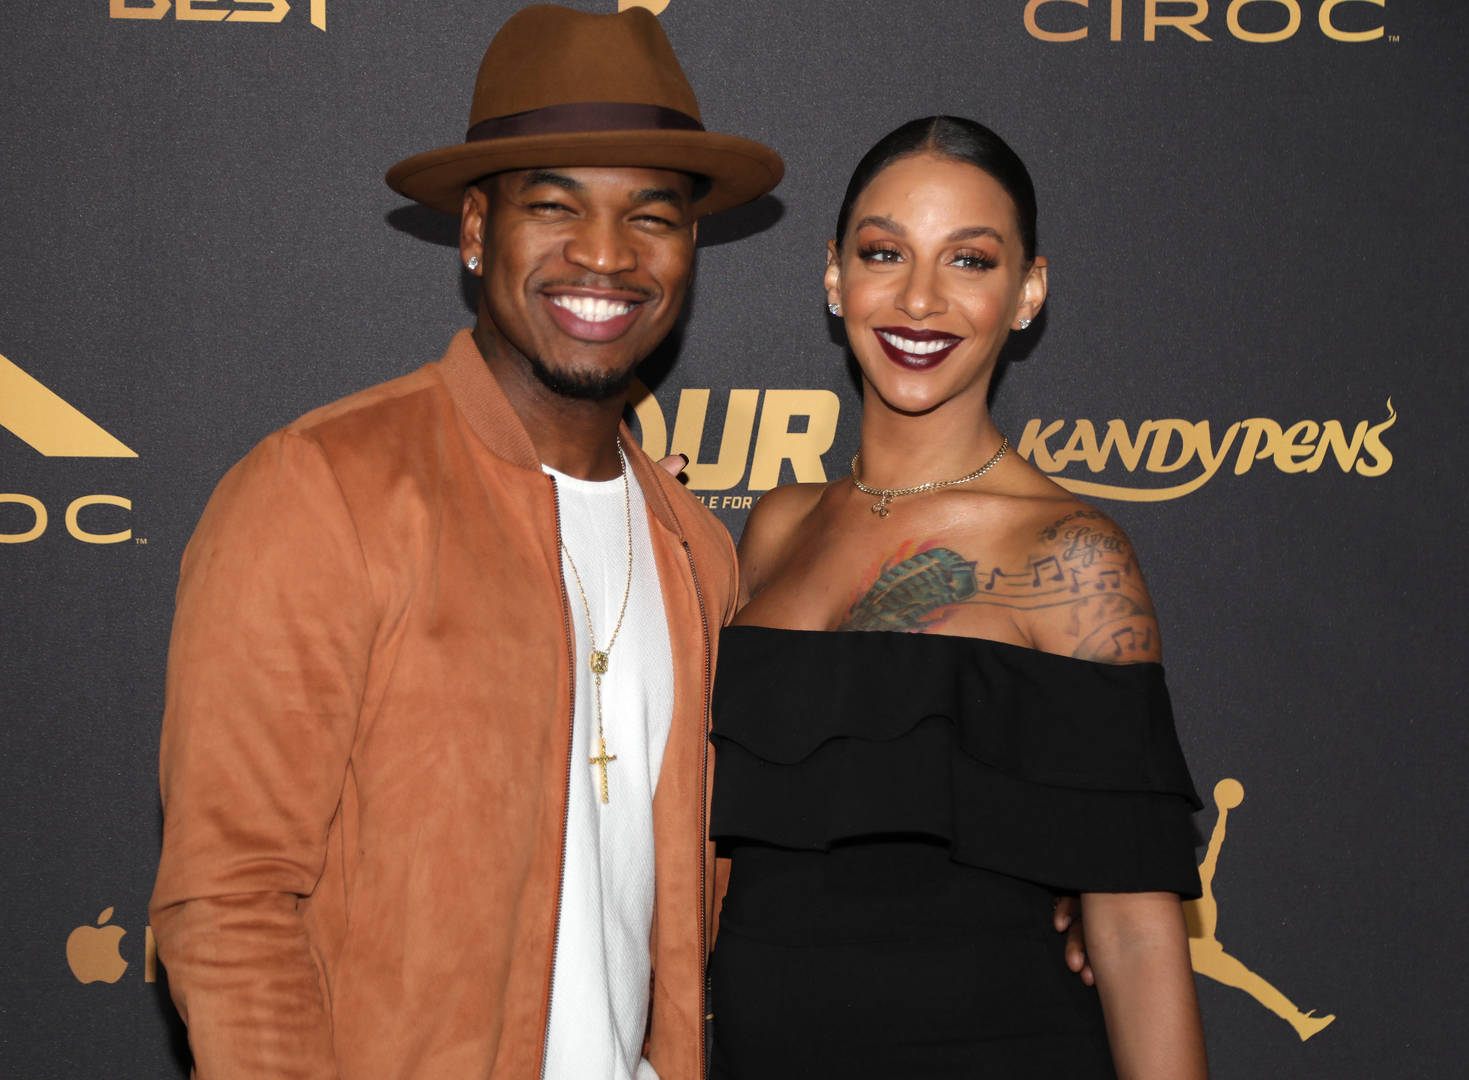 """Ne-Yo Admits To Listening To His Own Music During Sex: """"By Request Only"""""""